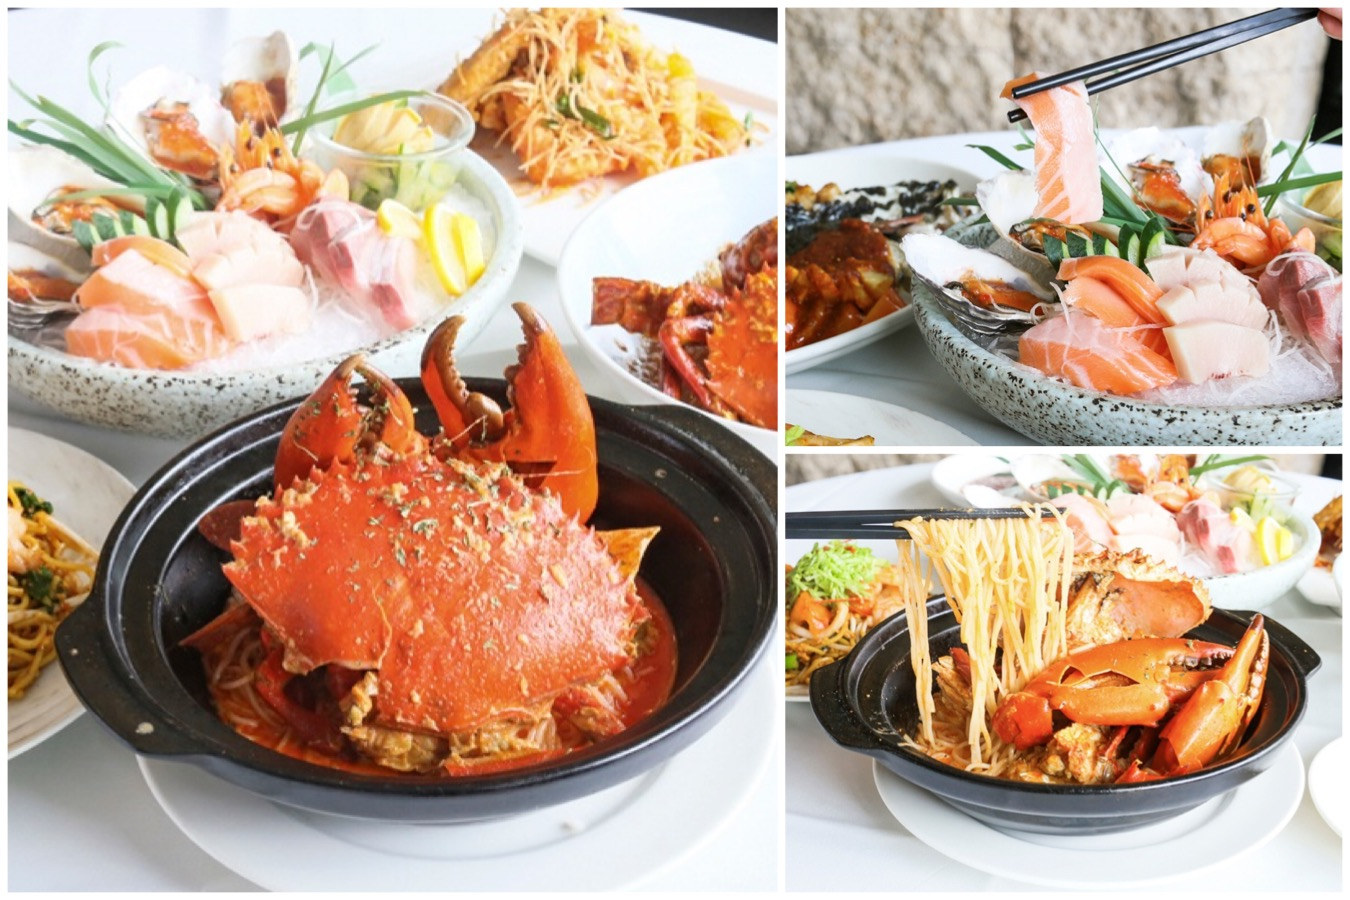 TungLok Seafood – Singapore Chilli Crab, Laska Crab And More Seafood At Orchard Central